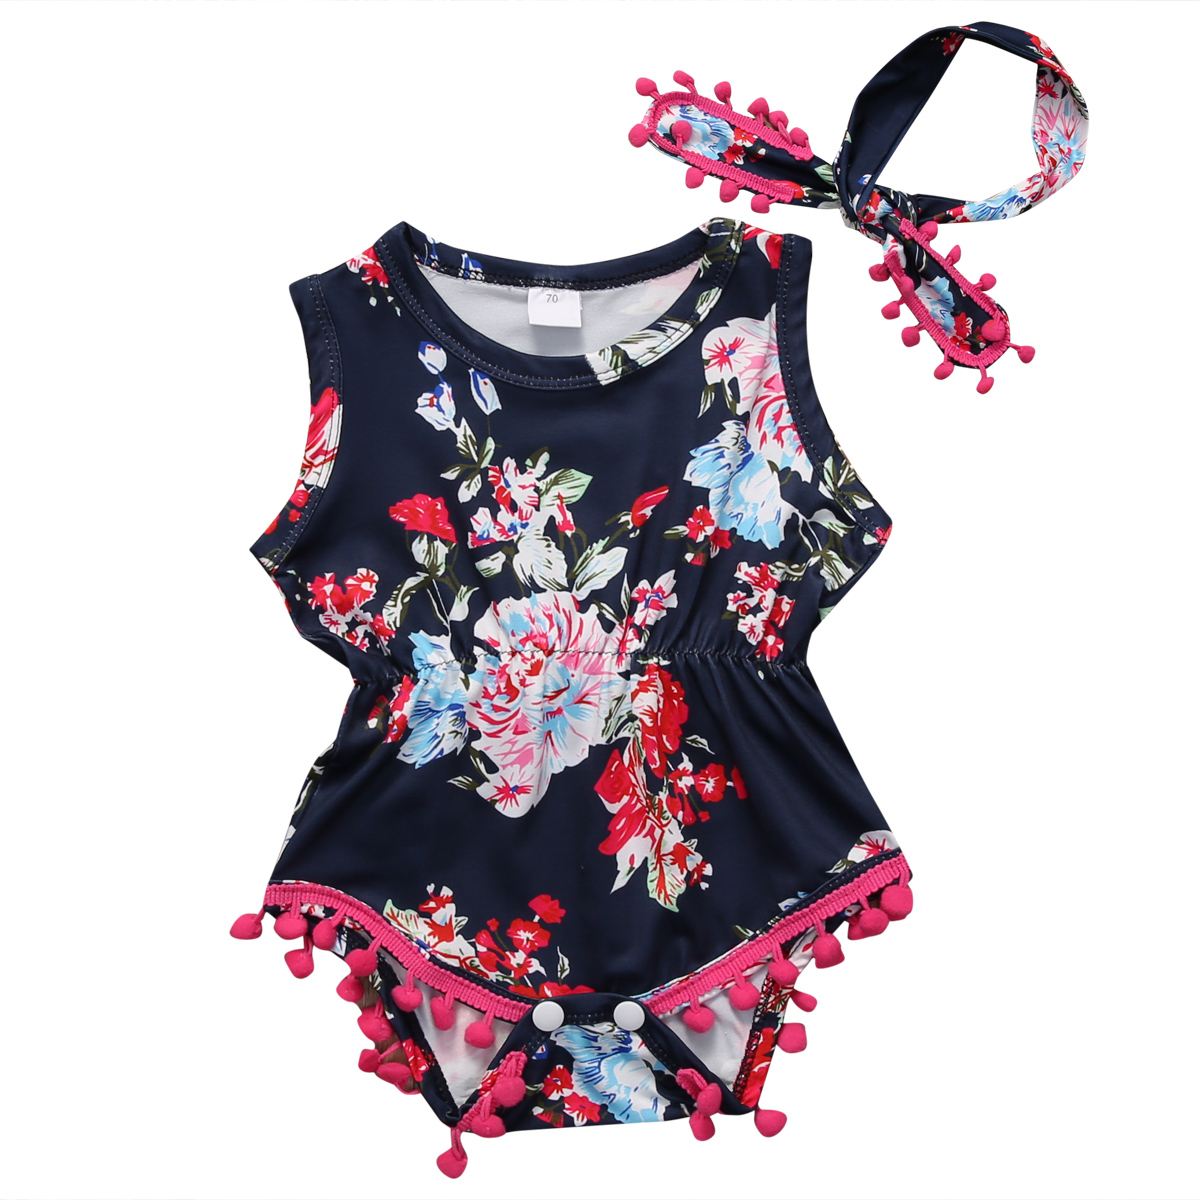 Emmababy Newborn Baby Girls Floral Print One Piece Tassel  Romper Bow Headwear Sunsuit Clothes Set 3Pcs kawaii shark print newborn baby girls strap romper jumpsuit one piece sunsuit outfit clothes